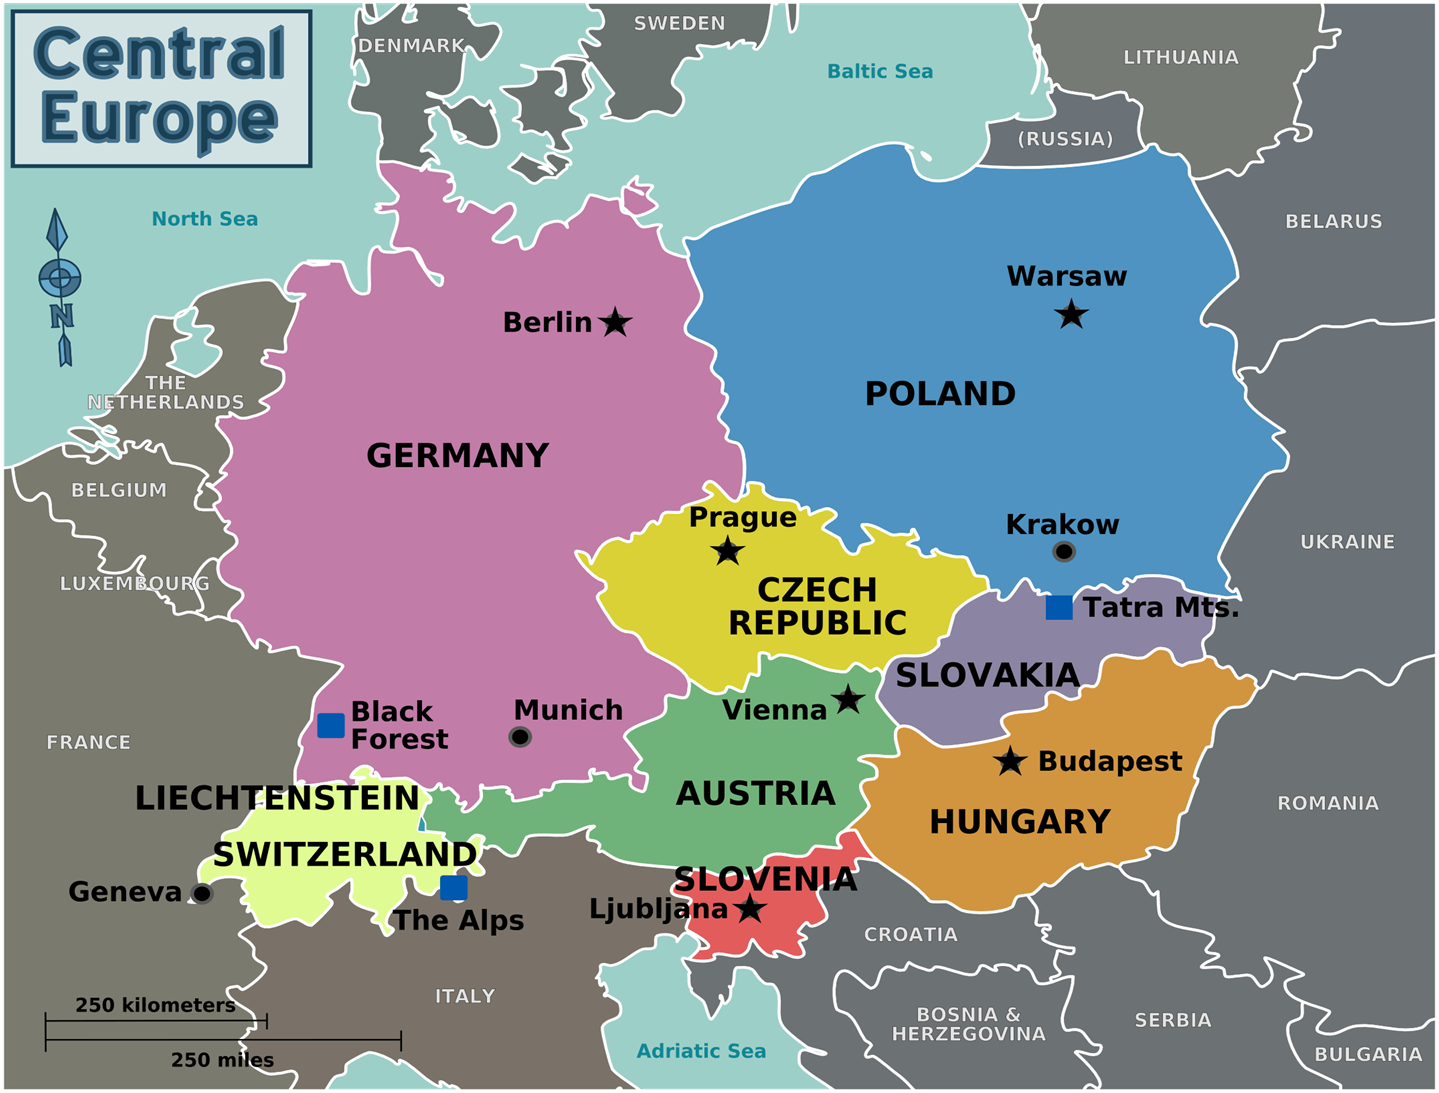 TOURISM GEOGRAPHY Central Europe